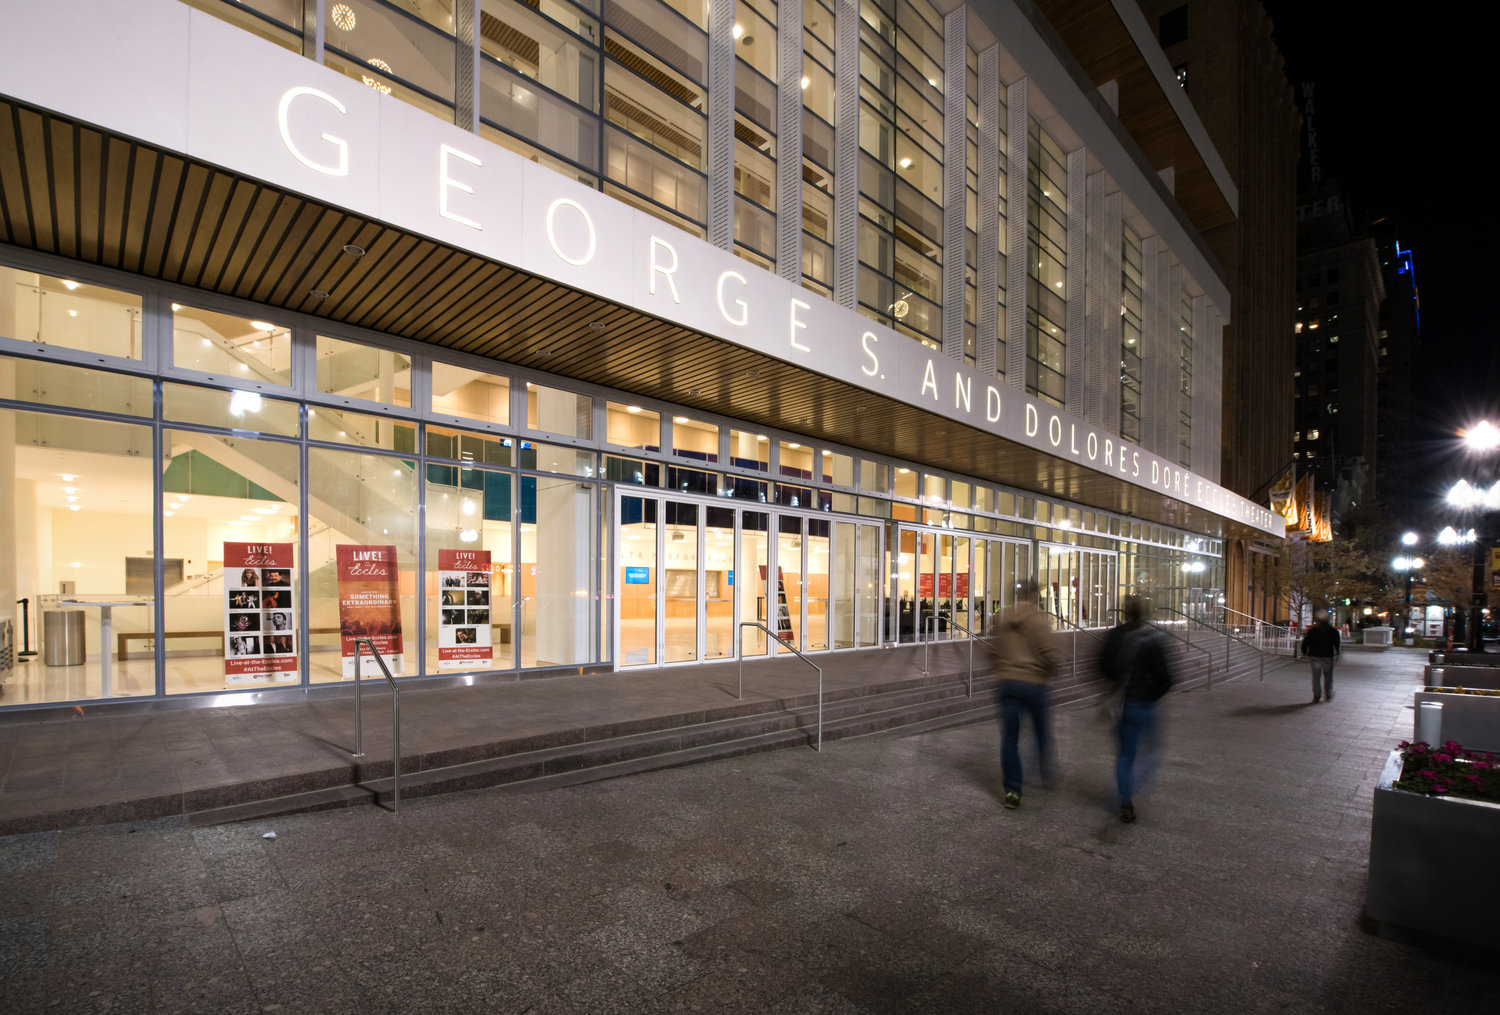 private events at eccles theater